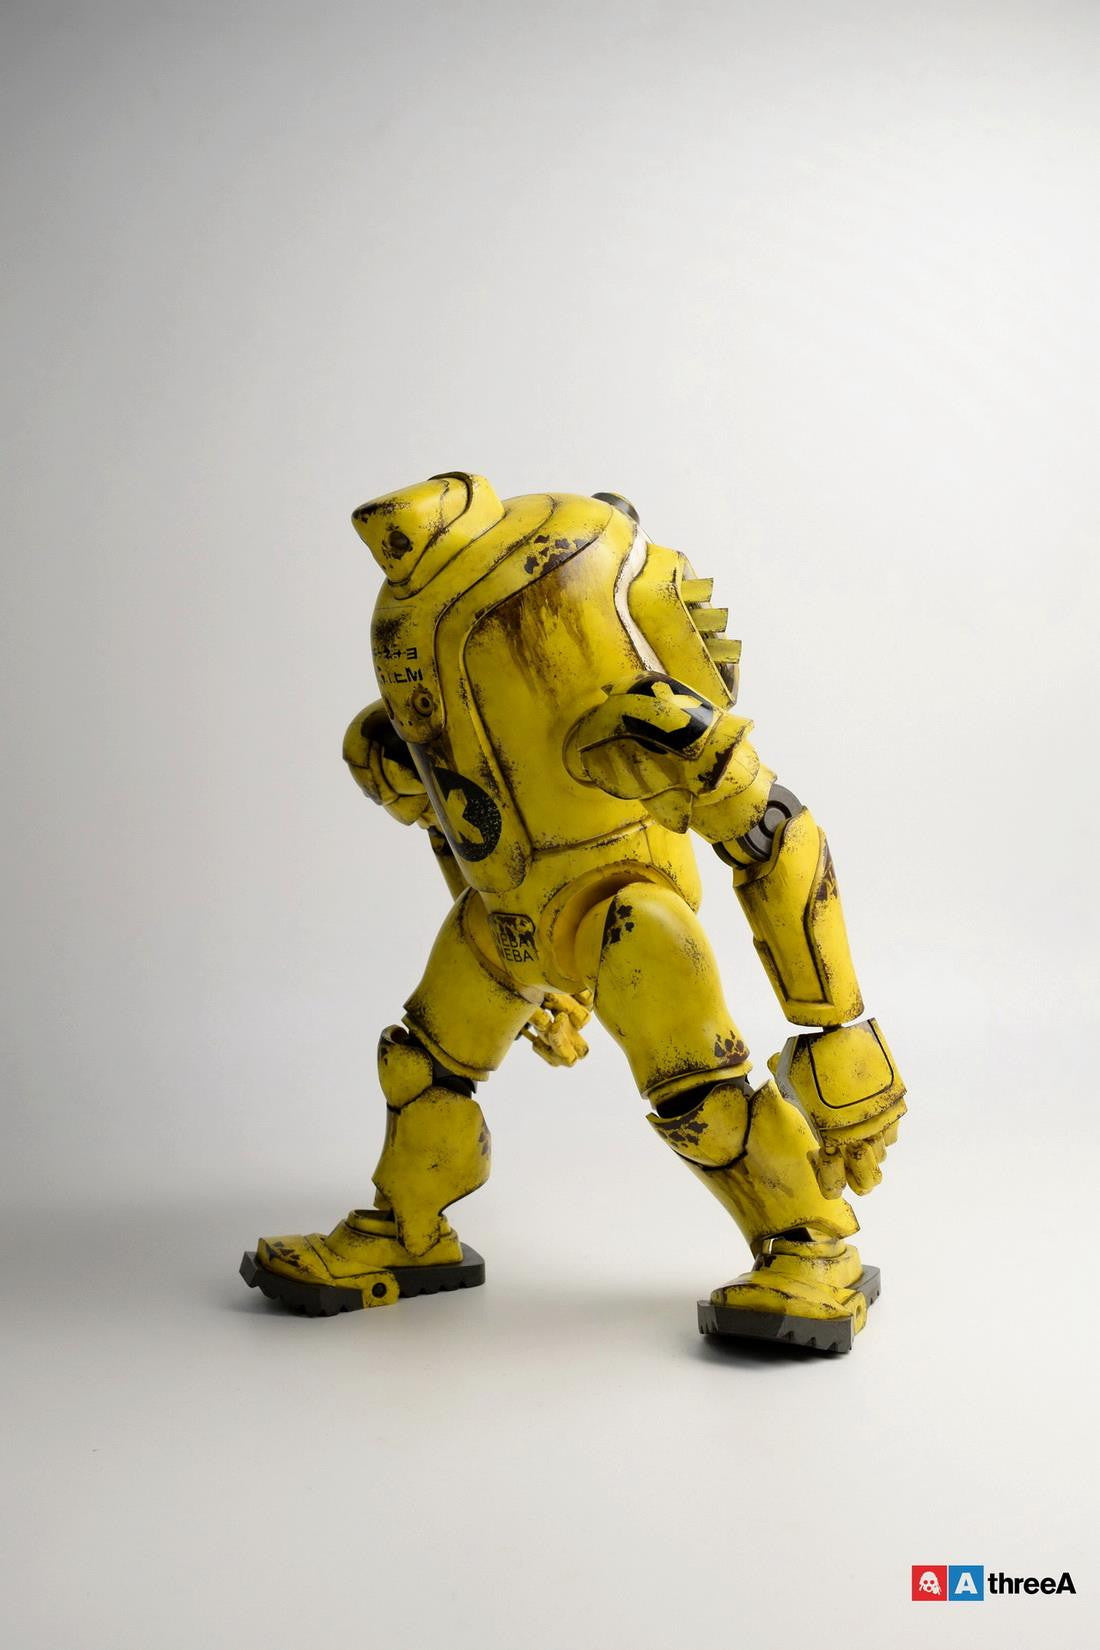 ThreeA - Evenfall - 1/6 T.O.T.E.M Thug Pugillo - K Striker-047 (Yellow) - Marvelous Toys - 8